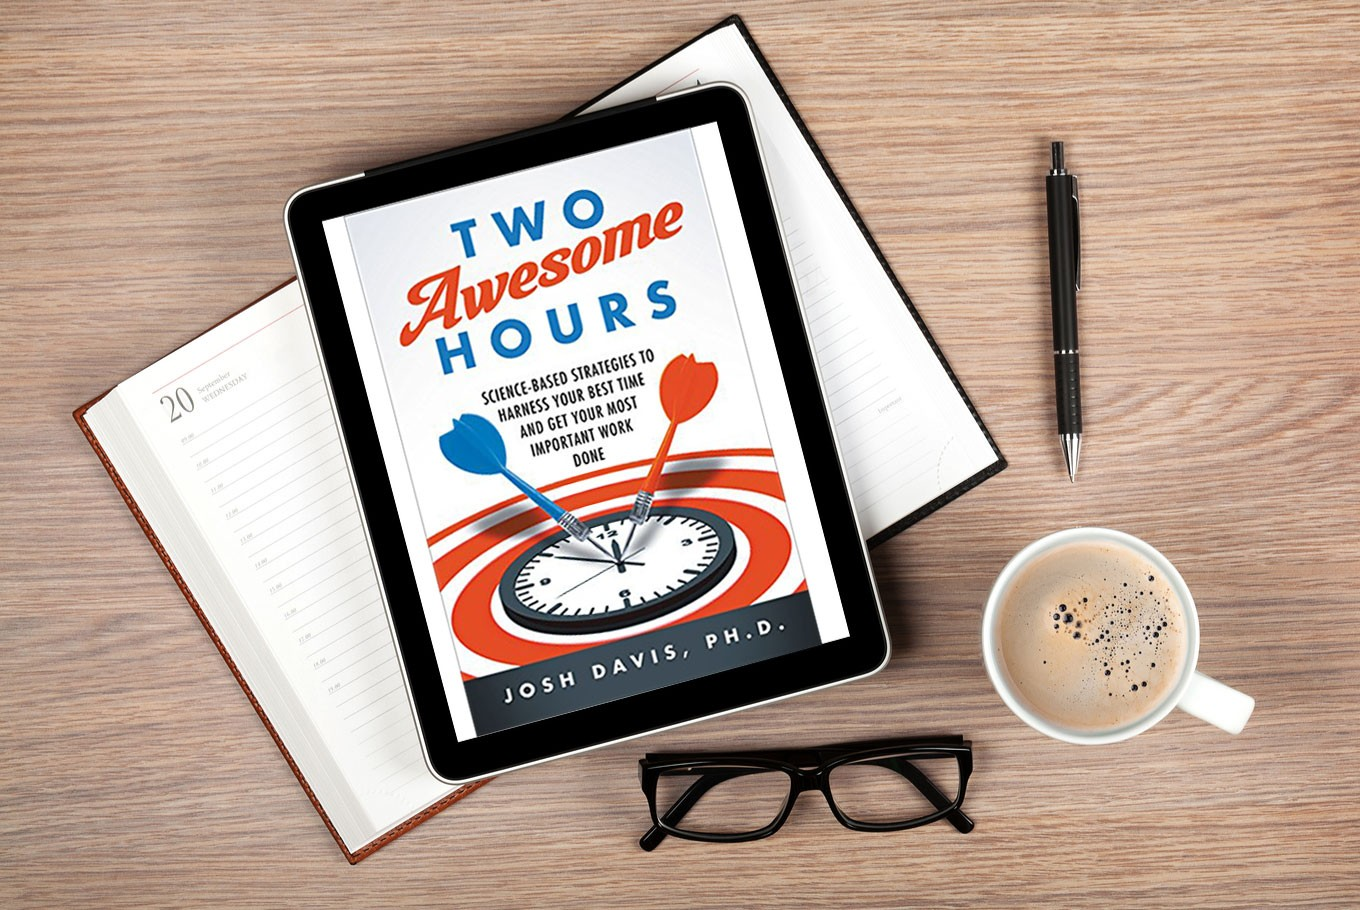 Book Review: Tweaking your brain to get everything done